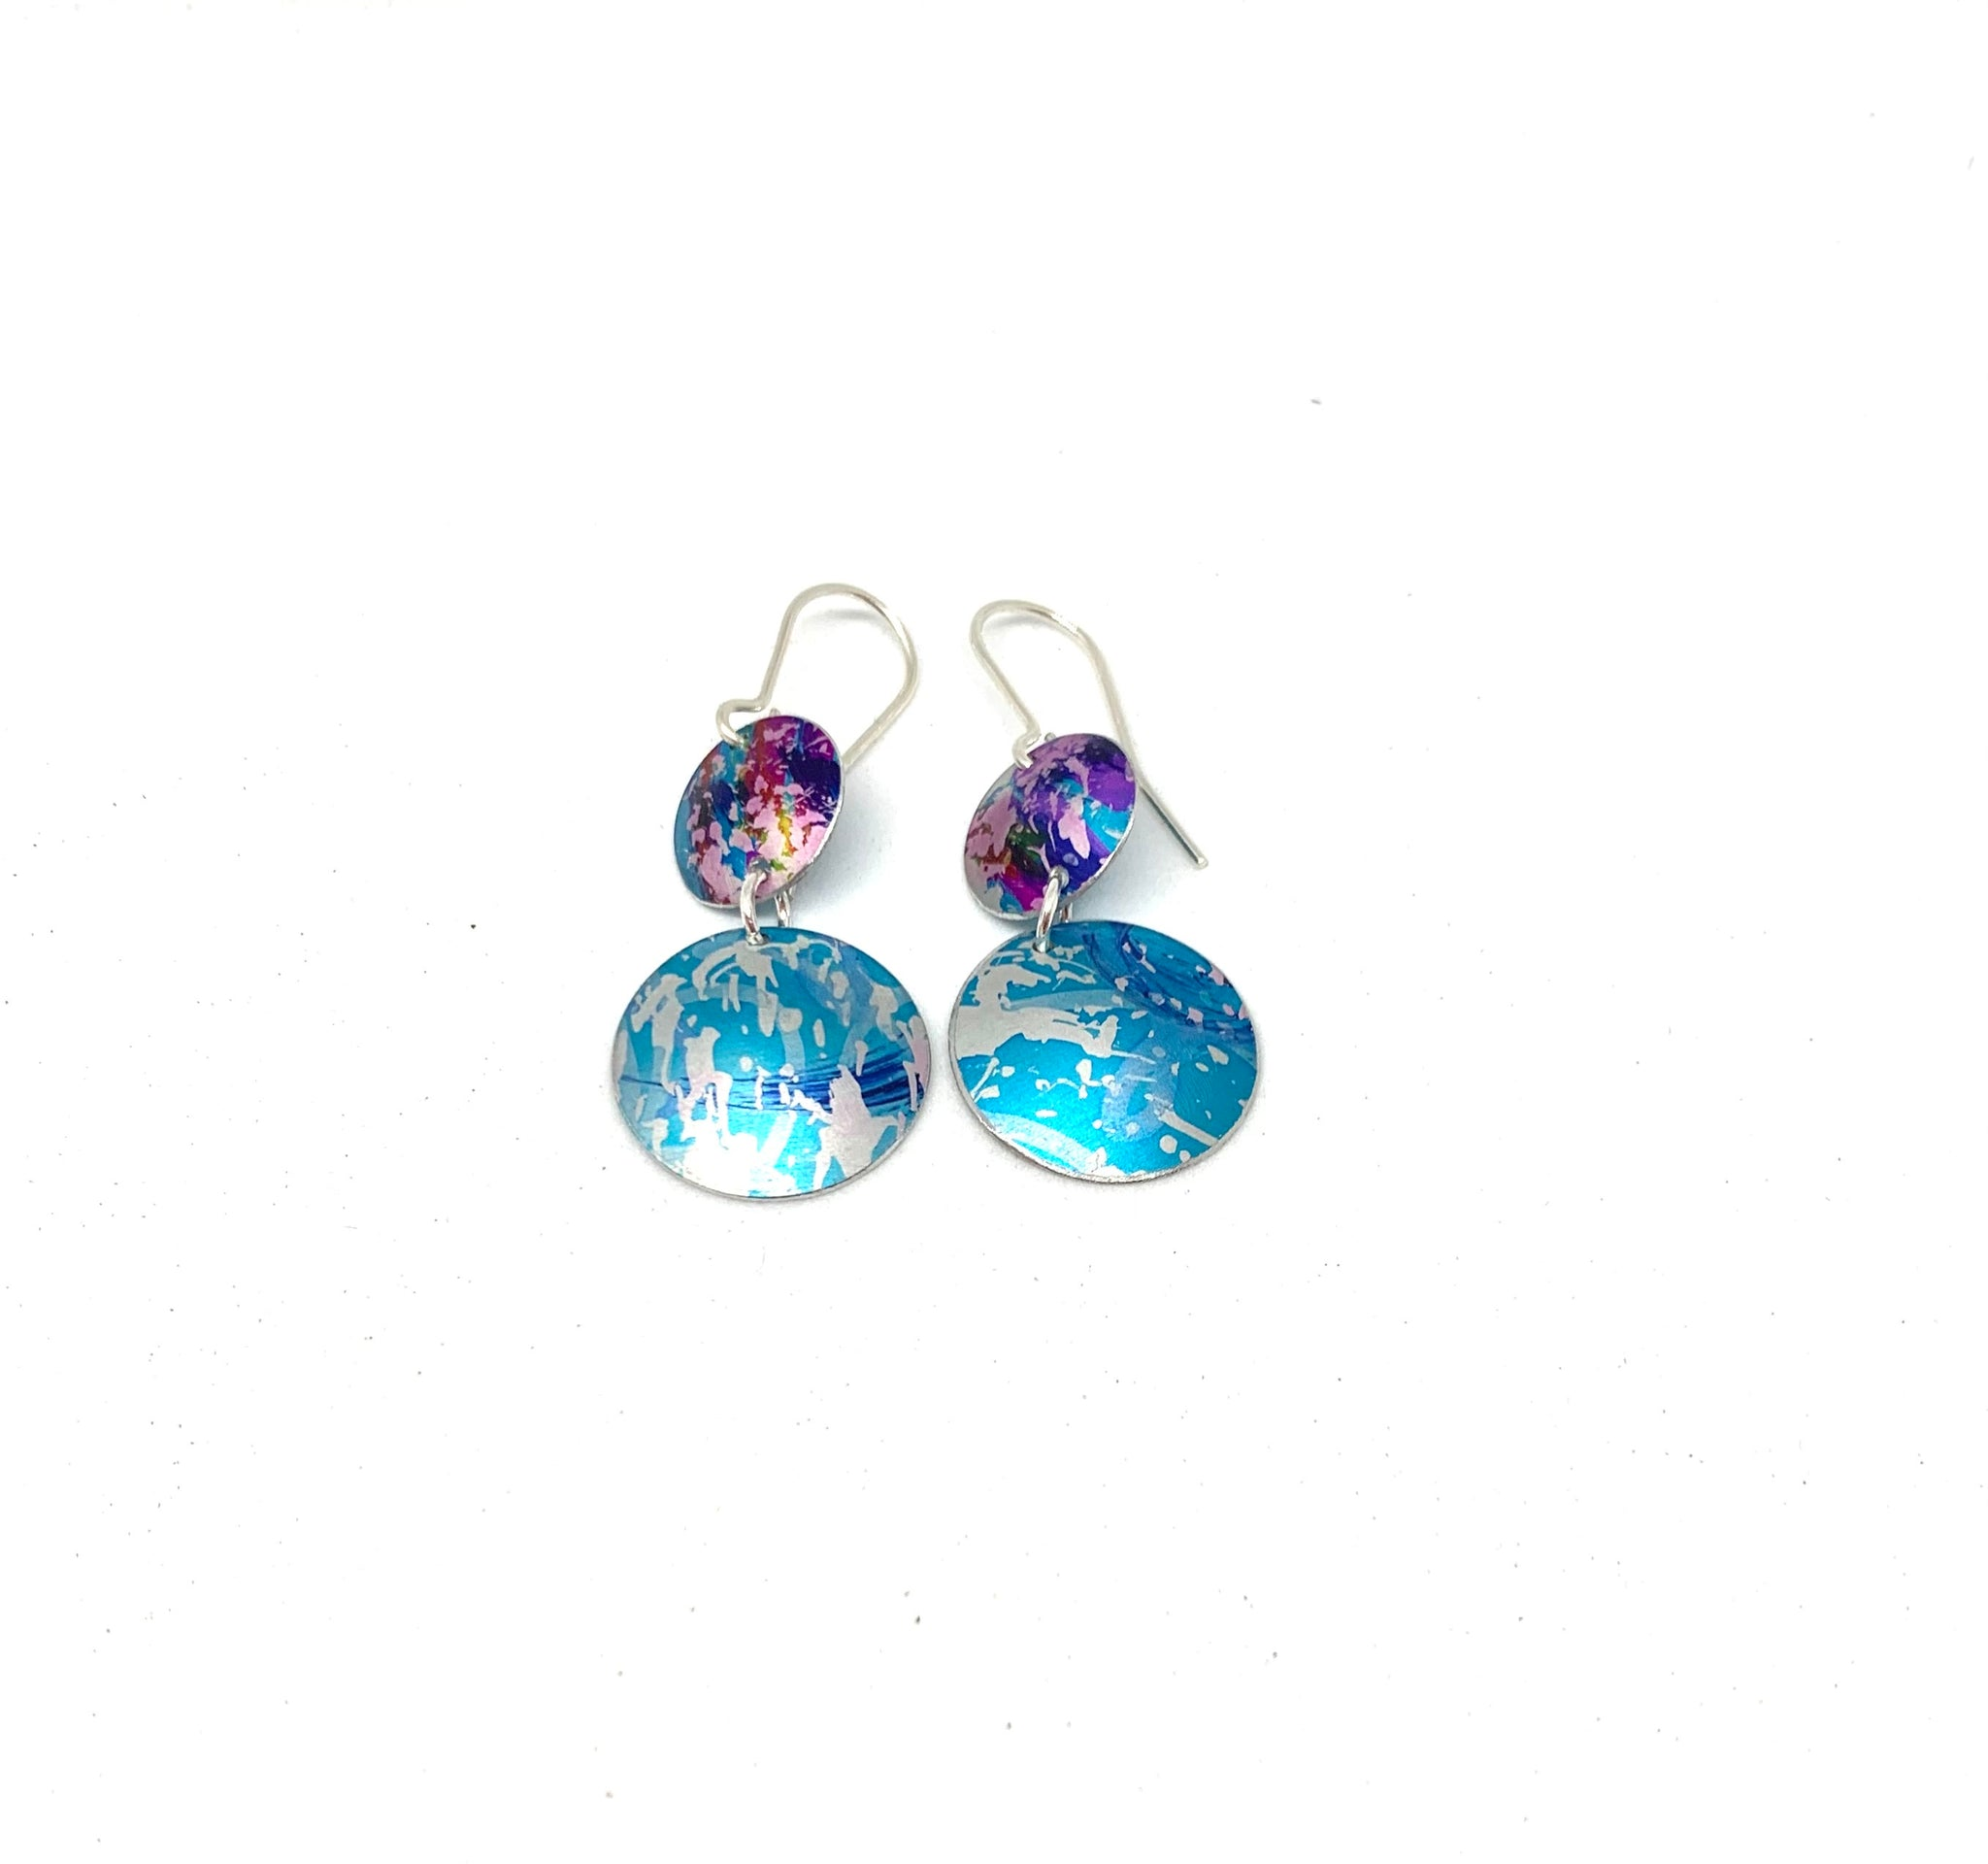 Turquoise Ocean and Navy dropper earrings